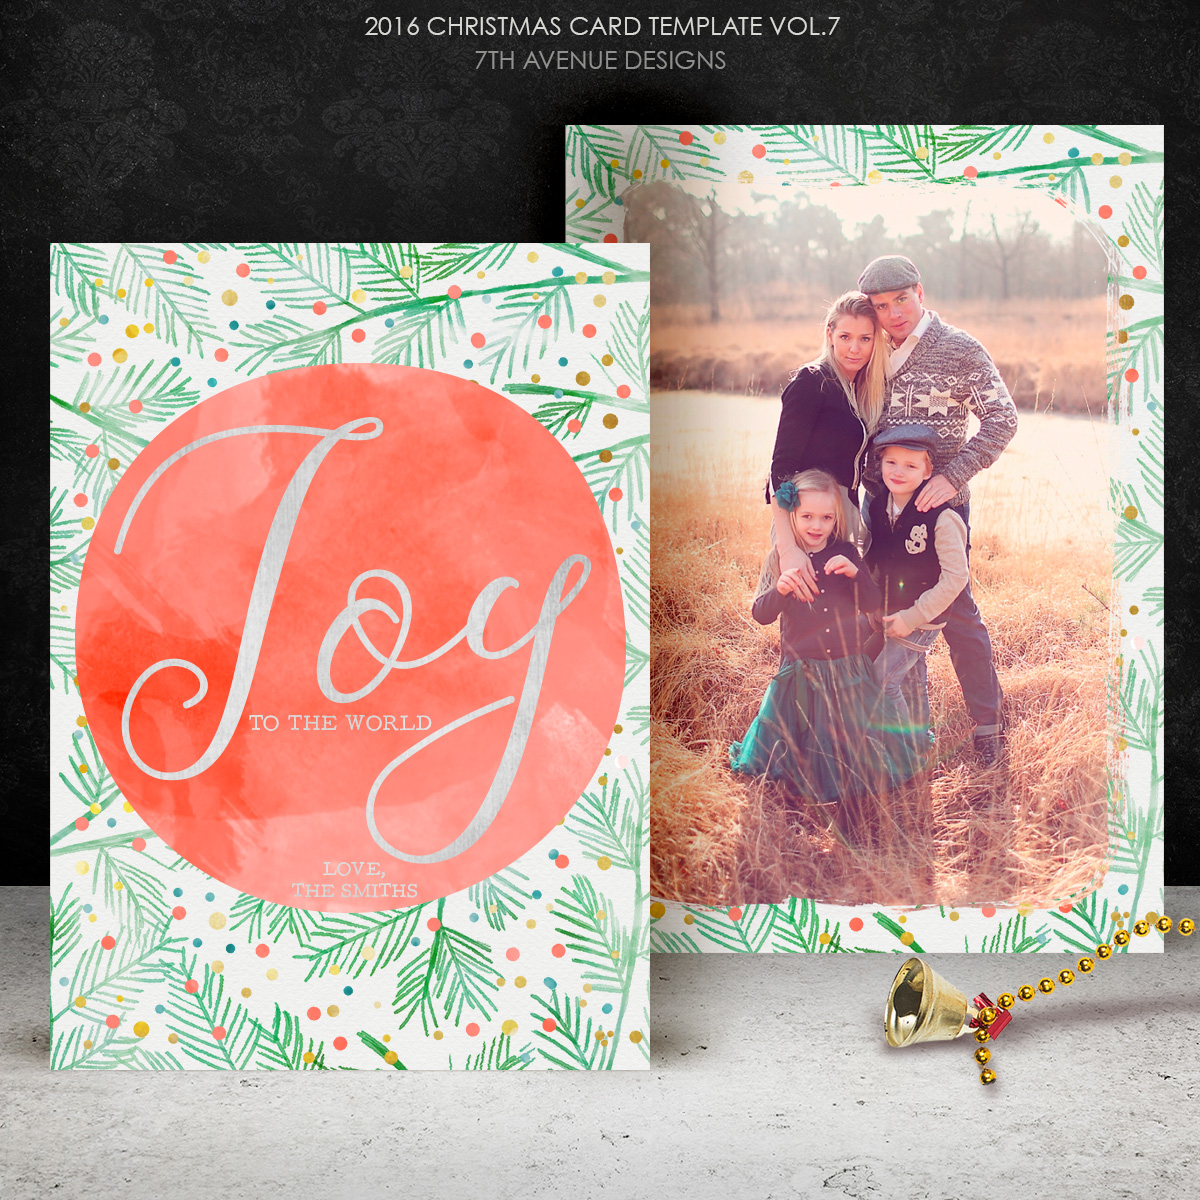 2016 Christmas Card Templates vol.7 -- 7x5 inch card template